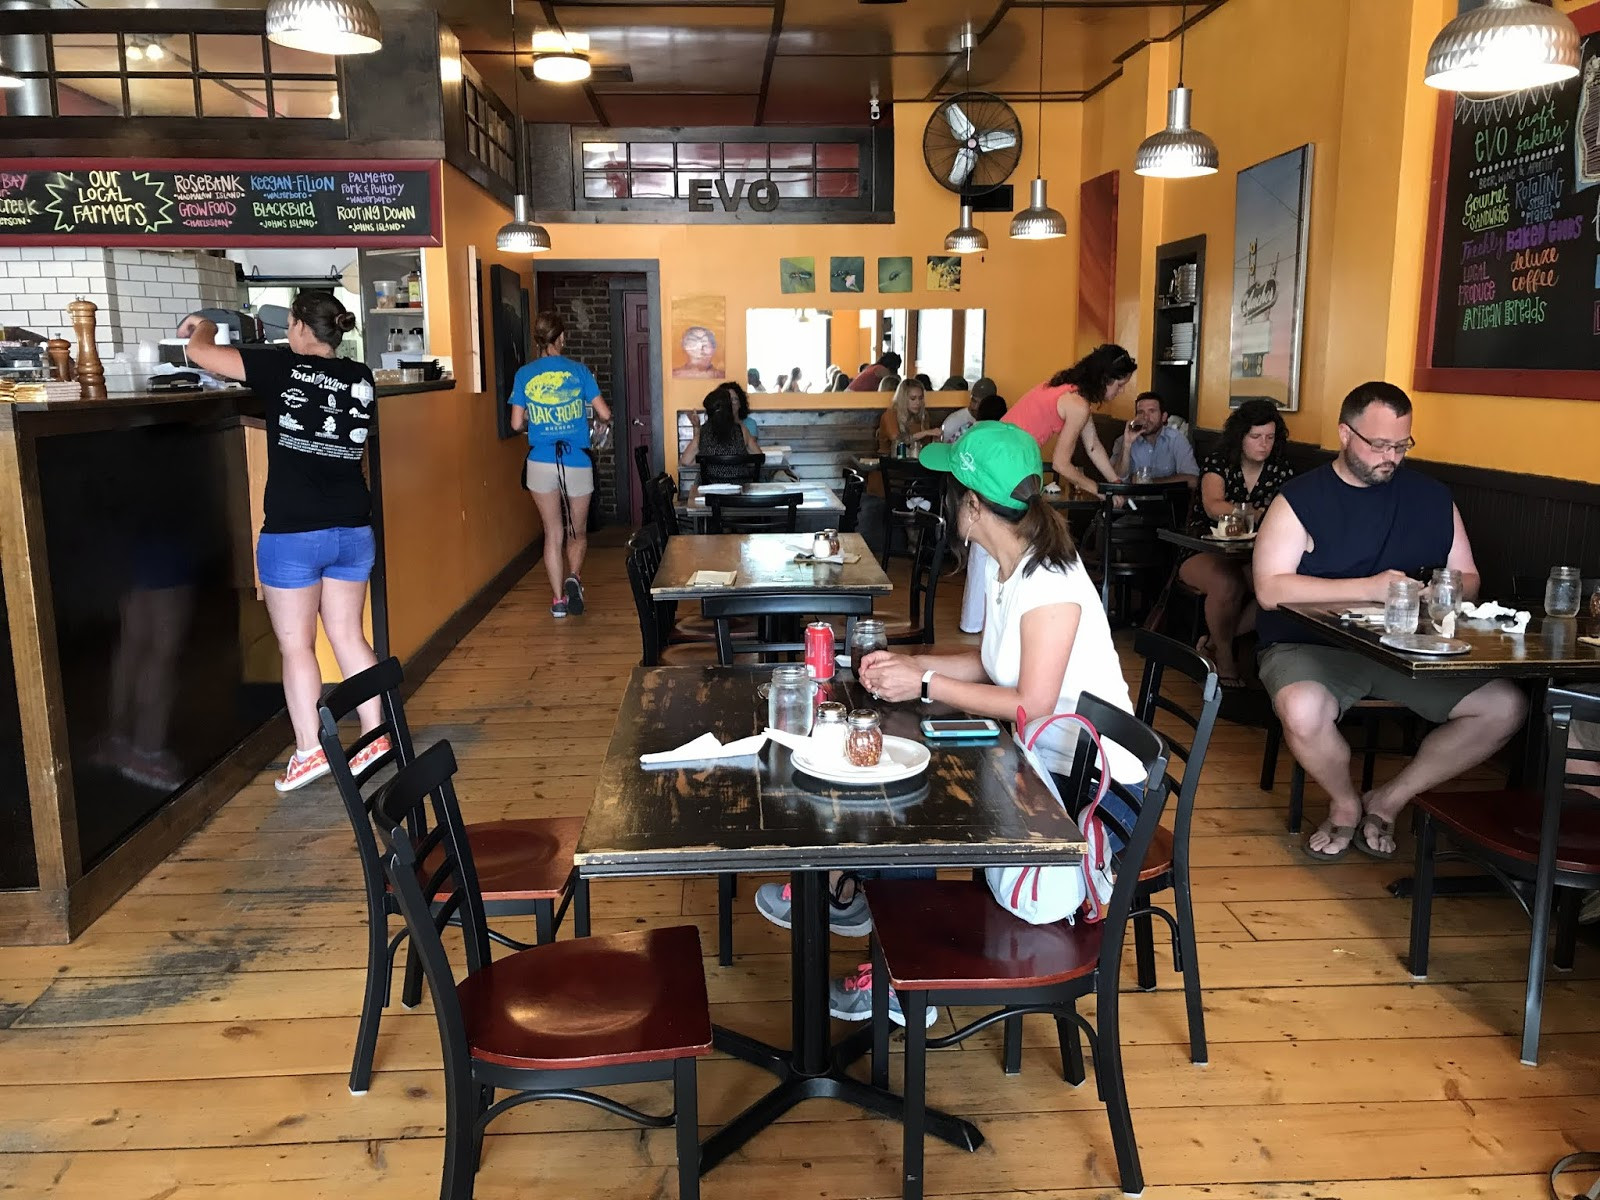 hardwood flooring north charleston sc of pizza quixote review evo pizza north charleston sc intended for we had visited the wonderful drayton hall on the outskirts of charleston and found ourselves in a remote area with time to